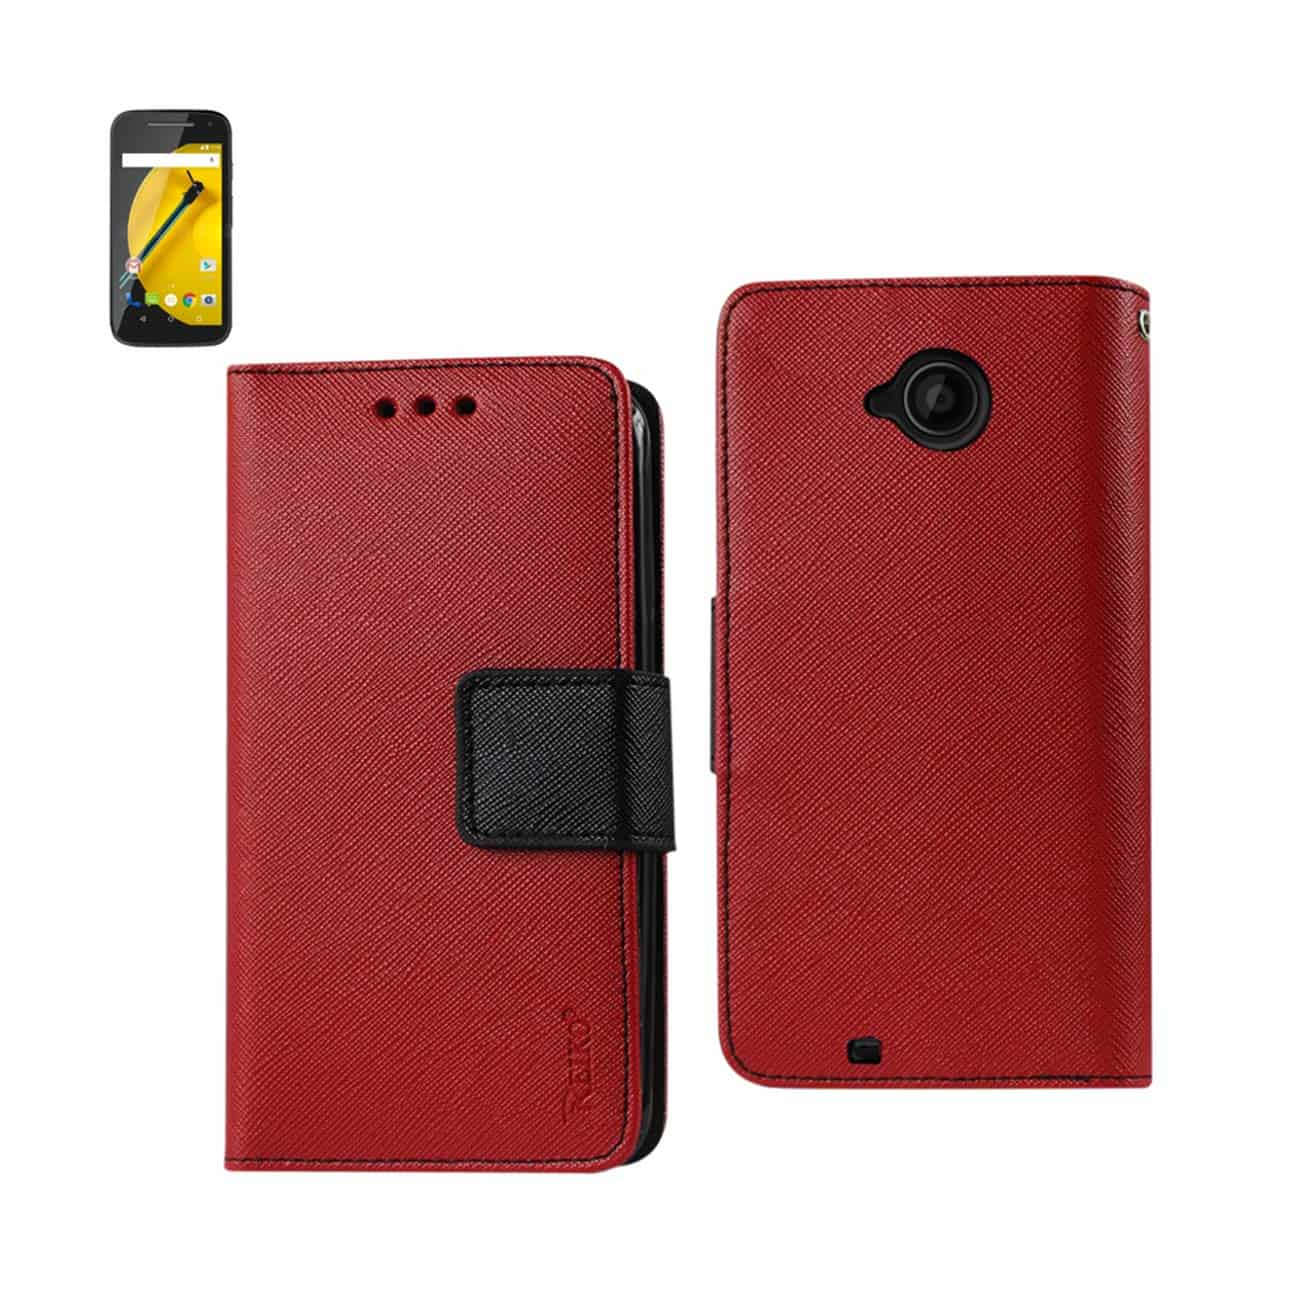 MOTOROLA MOTO E (2015) 3-IN-1 WALLET CASE IN RED